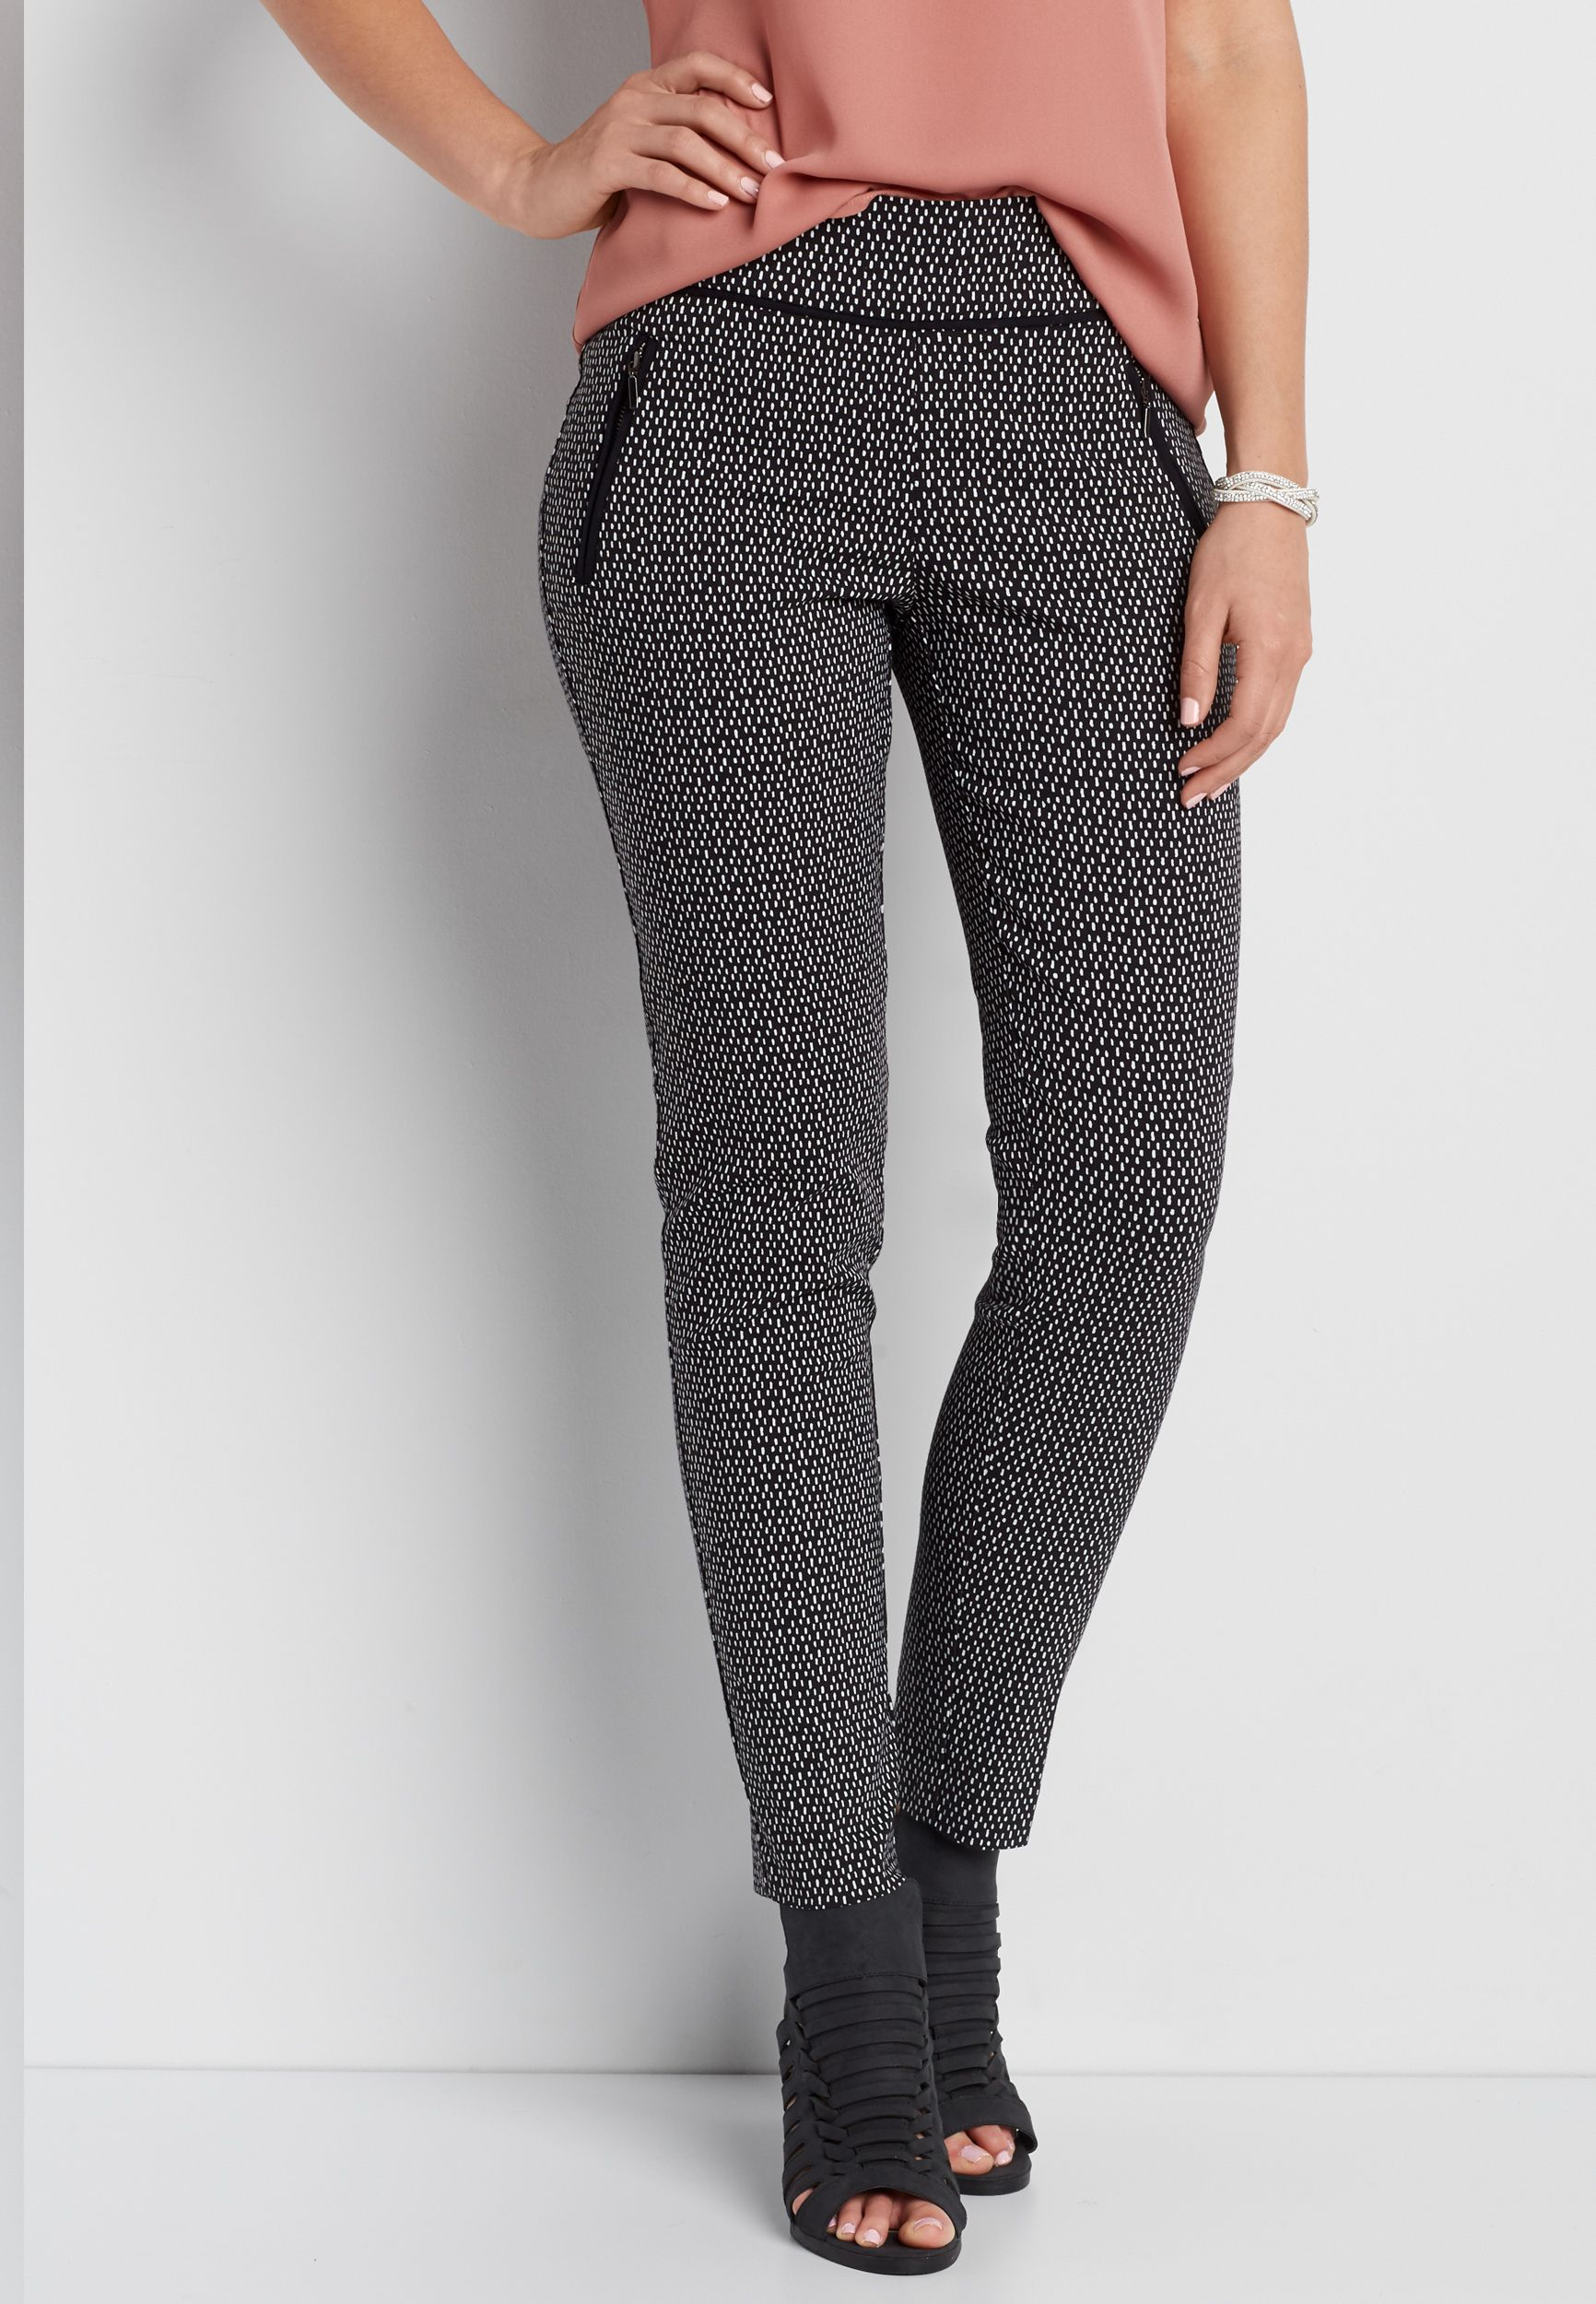 0a7ca16dfc4 the smart IT fit patterned pull on skinny ankle pant with piping (original  price